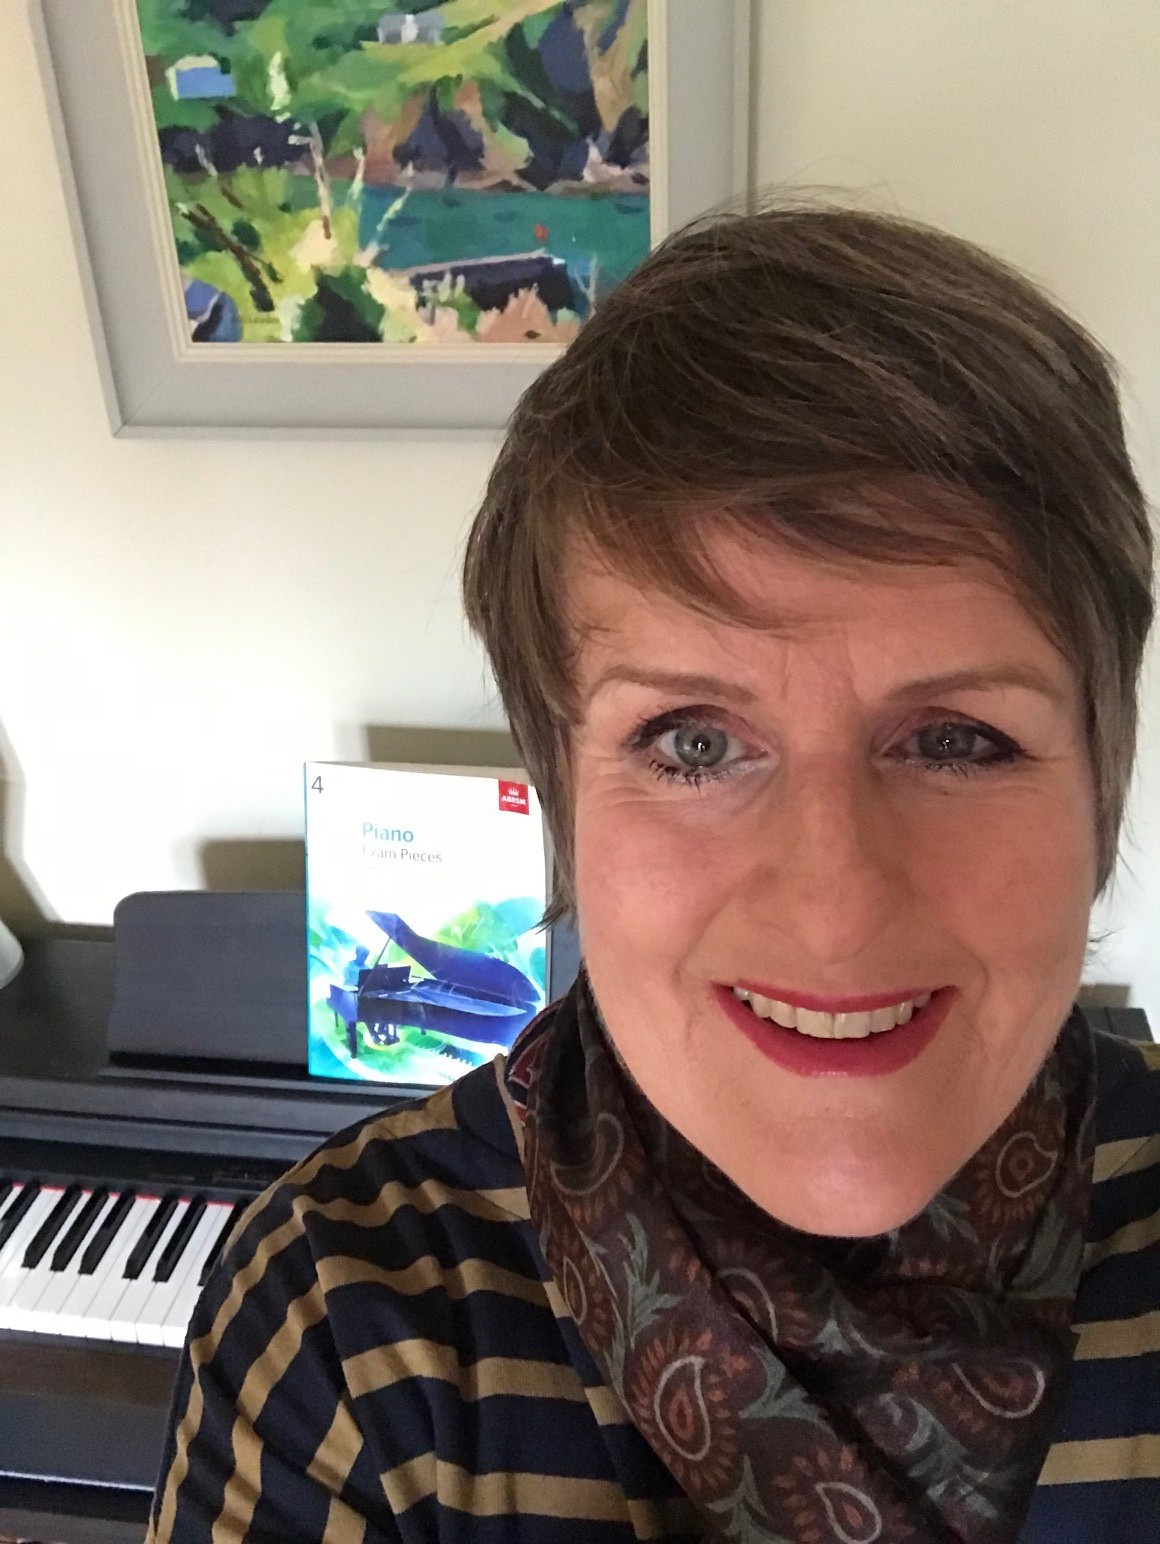 Why I am taking an ABRSM exam in my fifties